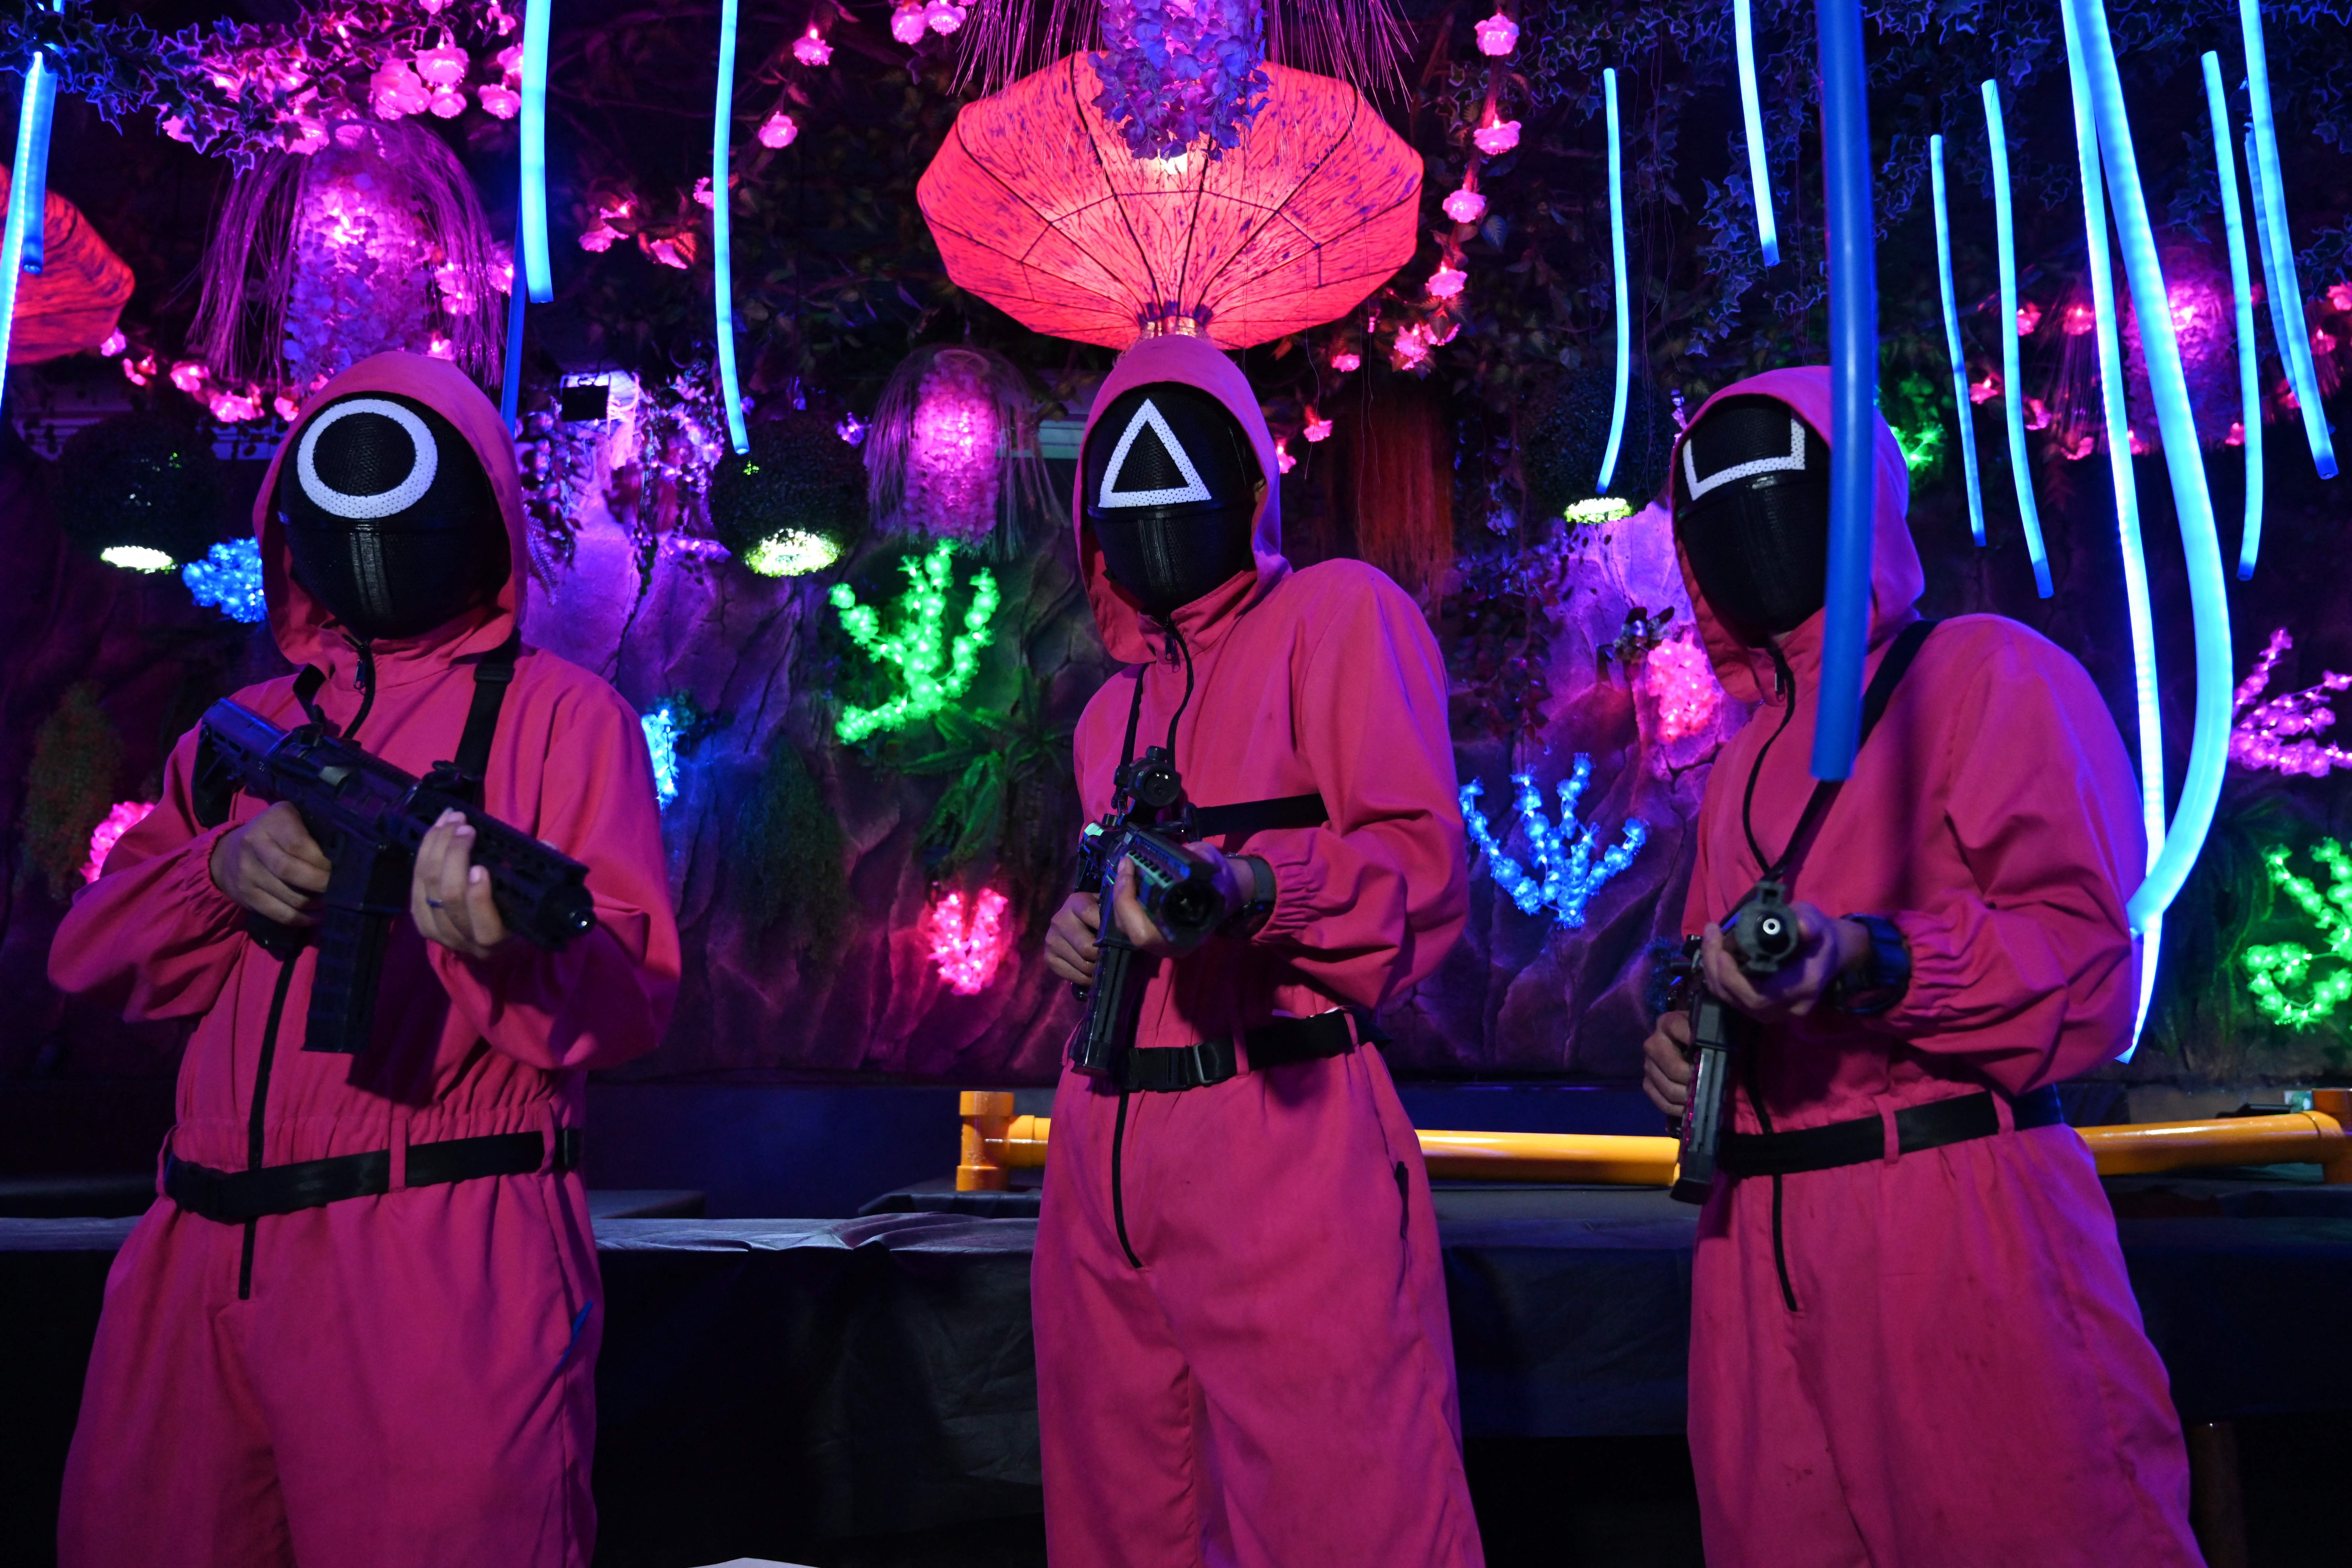 Waiters at a cafe in Jakarta pose for the camera while dressed as soldiers from the Netflix series Squid Game on October 19, 2021